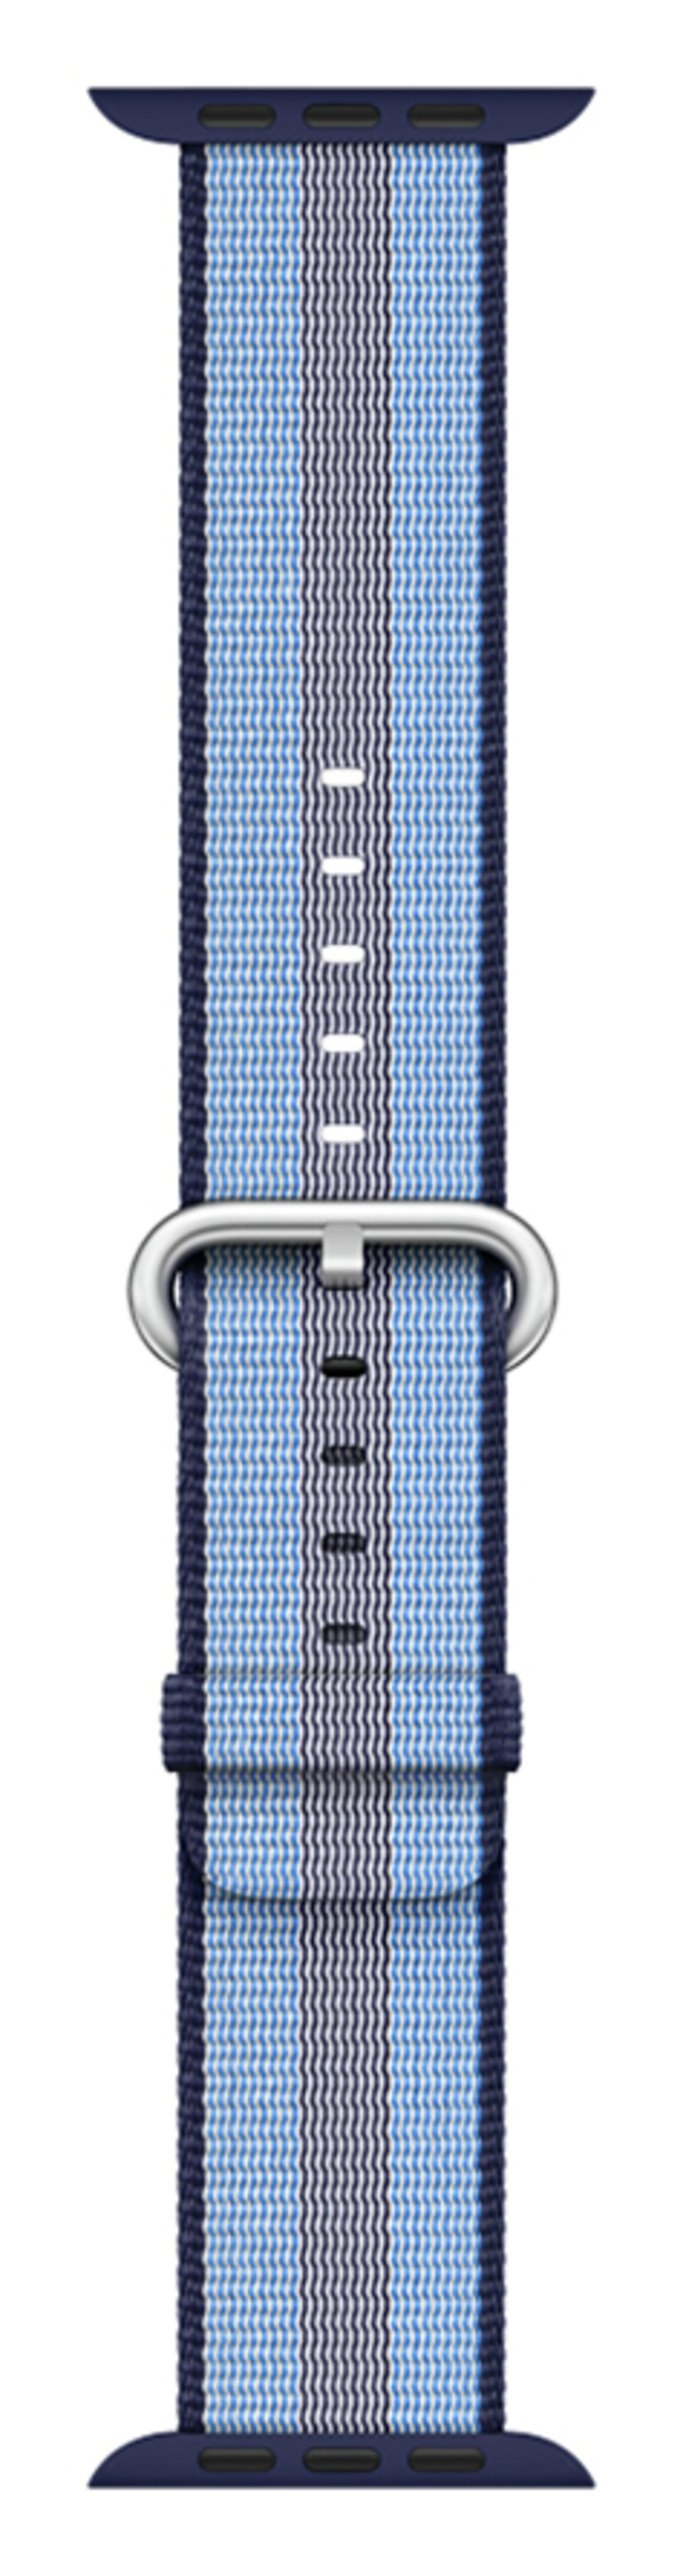 Apple Watch S3 42mm Midnight Blue Stripe Woven Nylon Band cheapest retail price